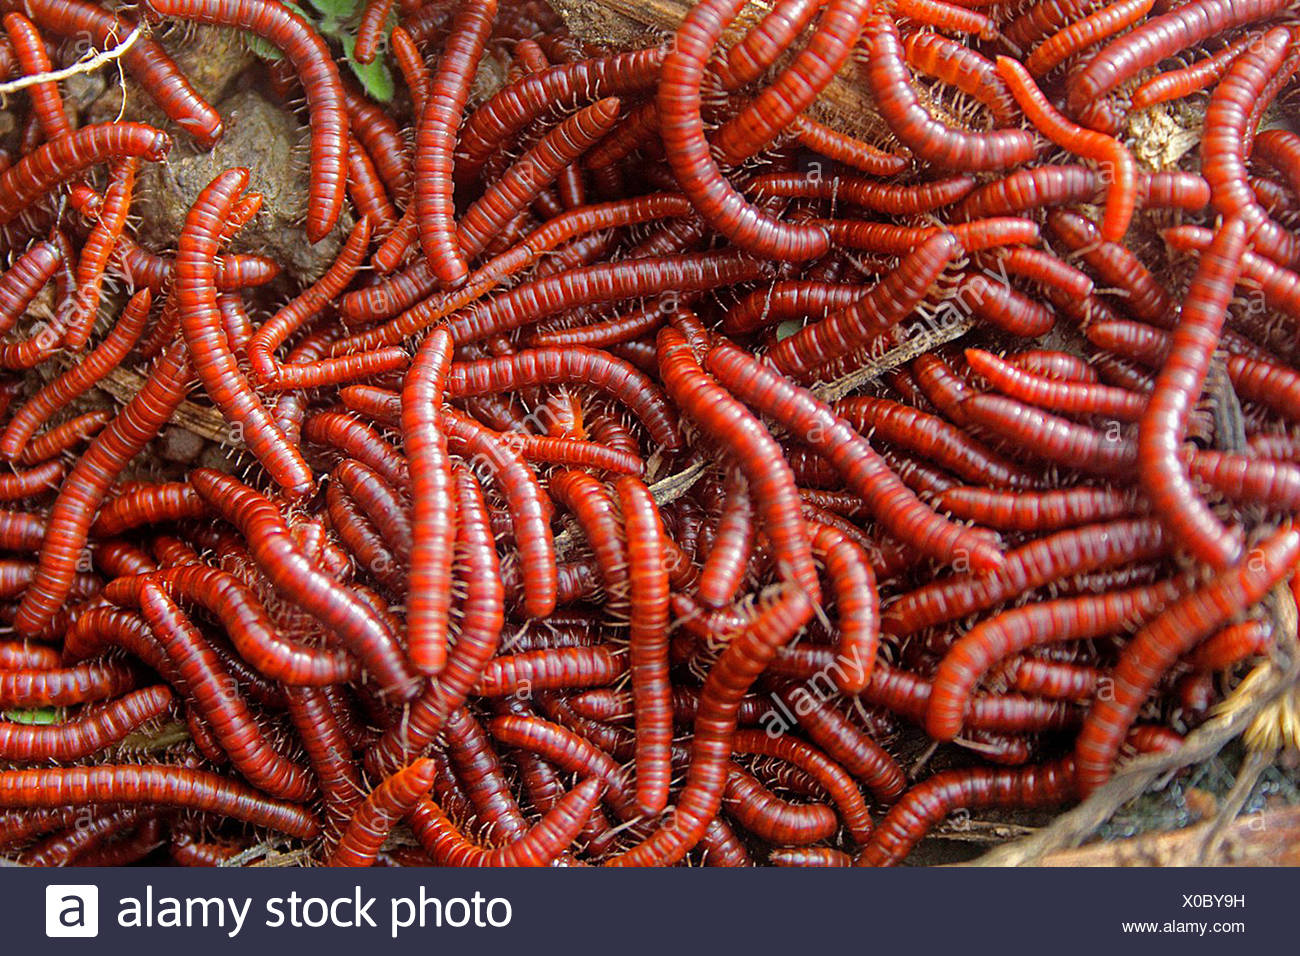 Millipedes  When alarmed, most millipedes coil up in an attempt to protect themselves, found during monsoon, almost in a group  Maharashtra, India - Stock Image